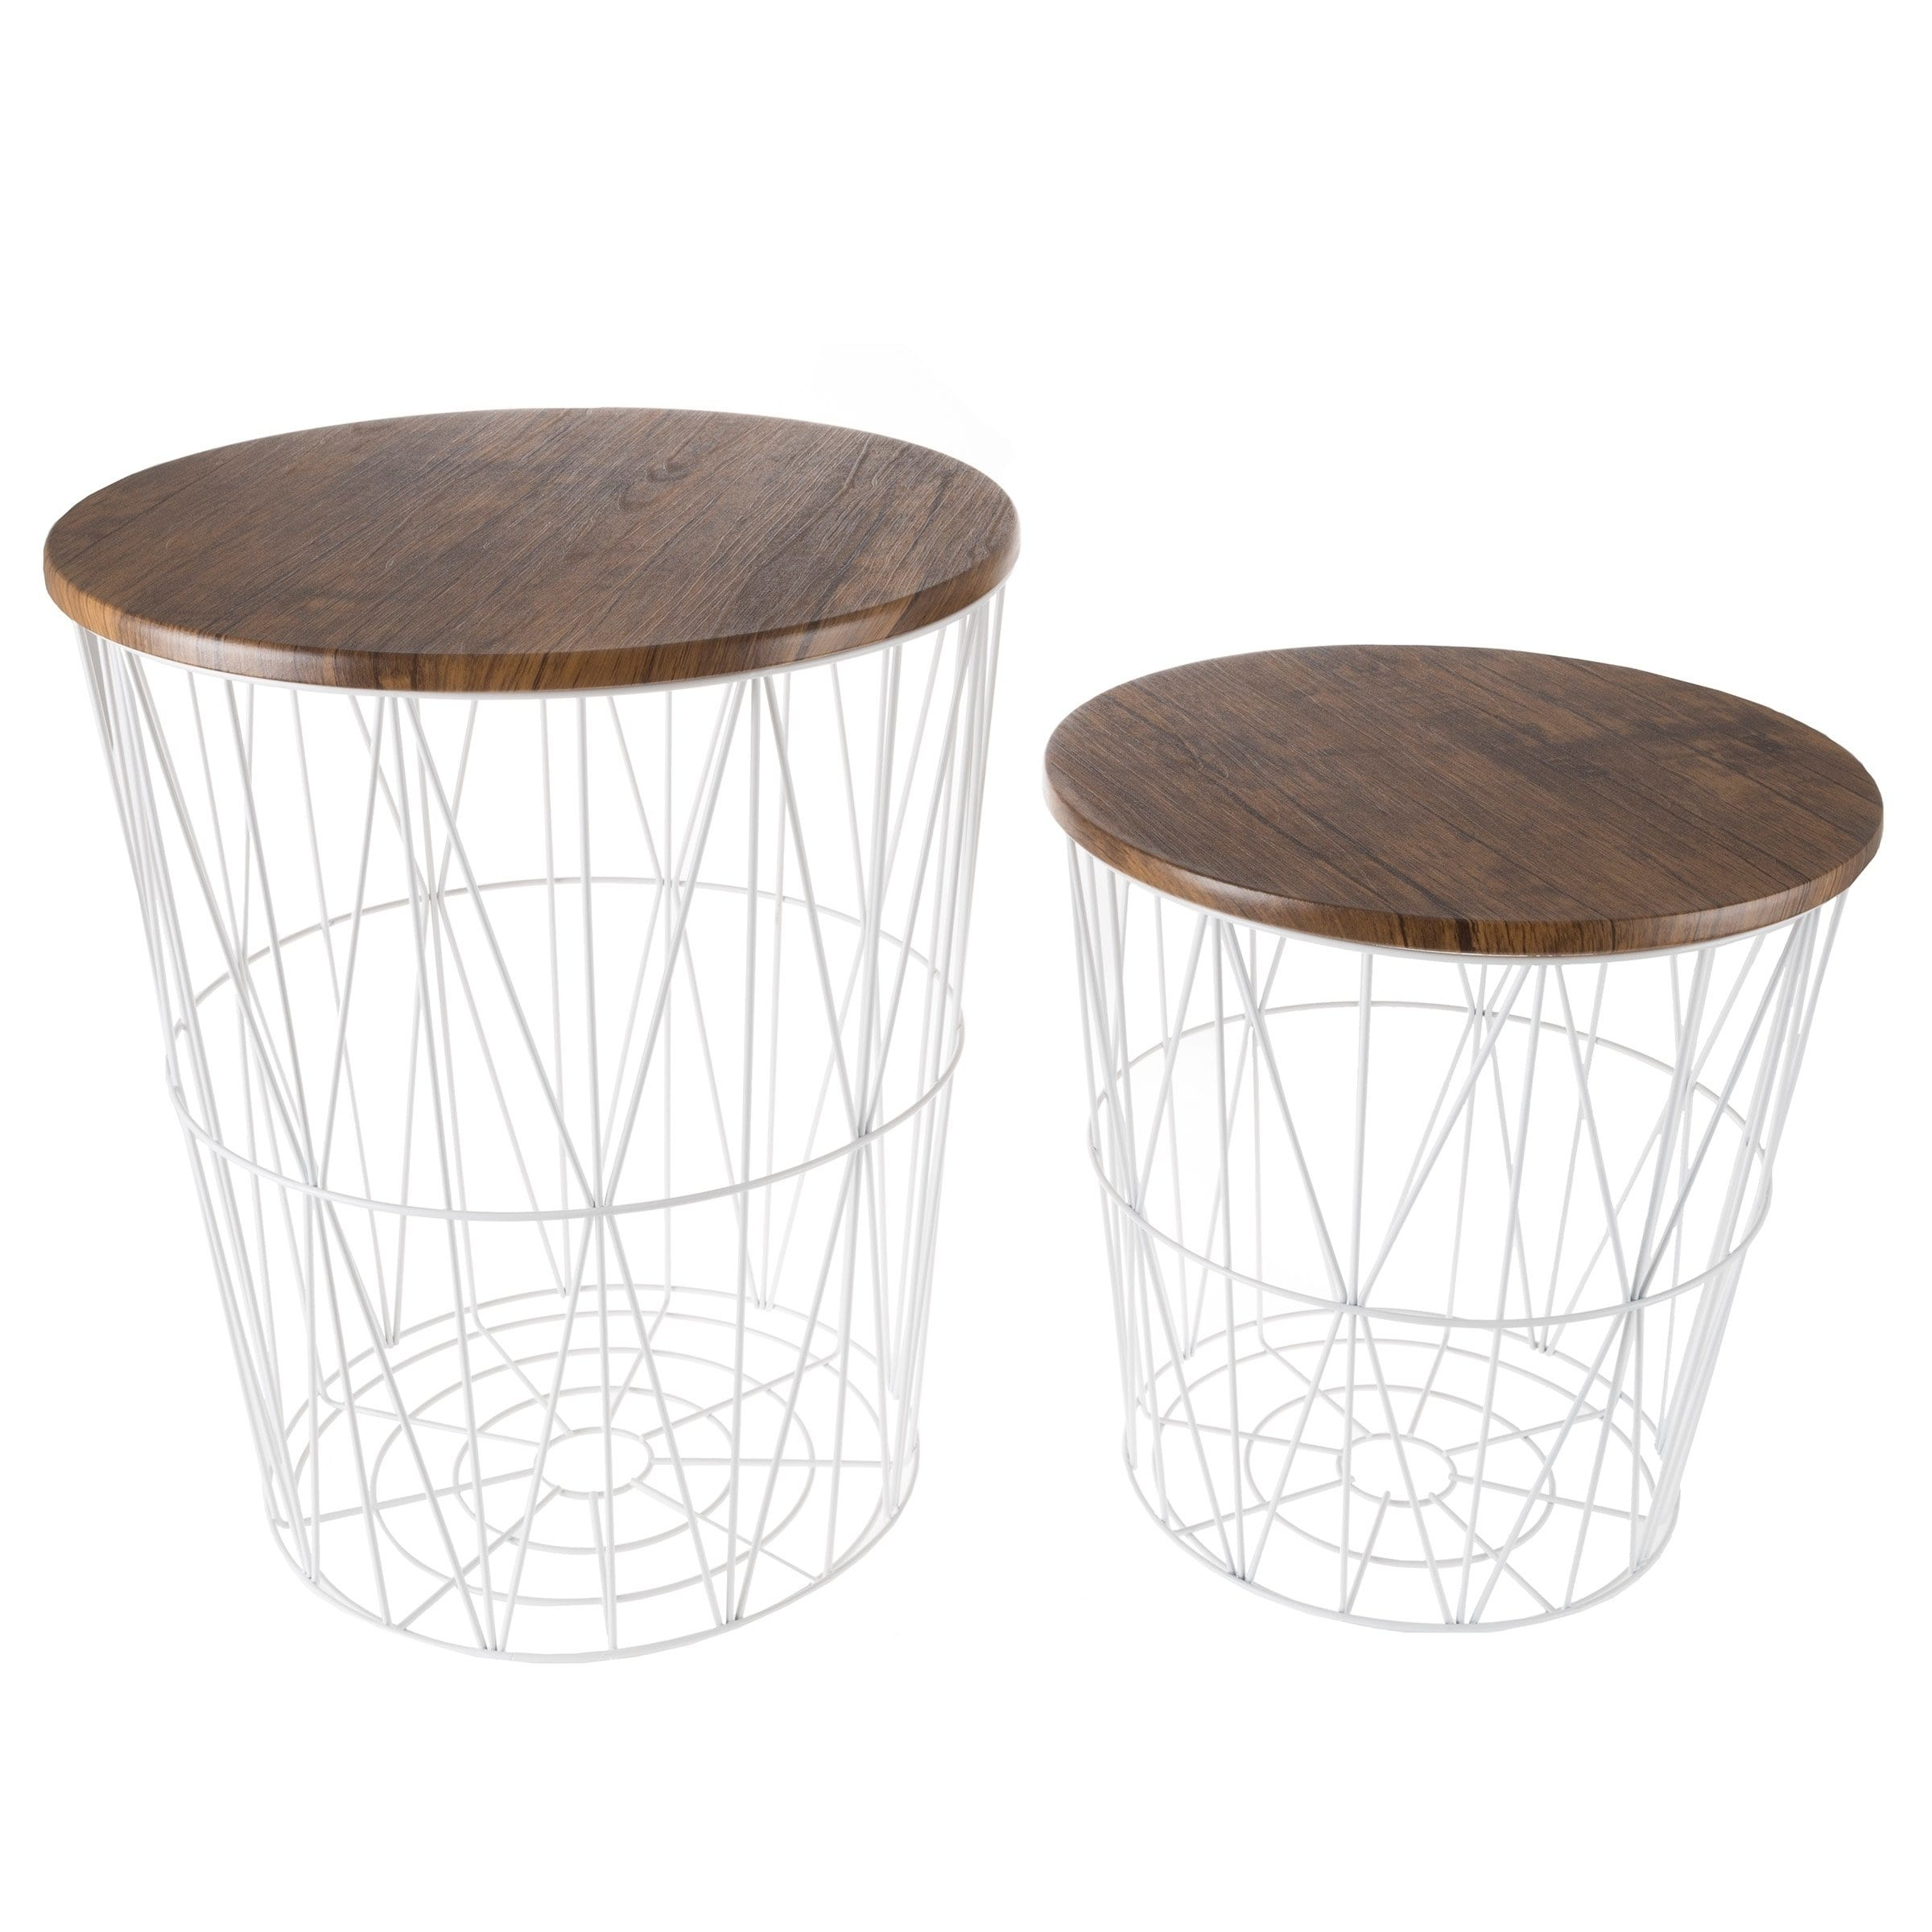 nesting end tables with storage set convertible round metal basket veneer wood top accent side lavish home homemade coffee table plans white lacquer pulaski dining room furniture